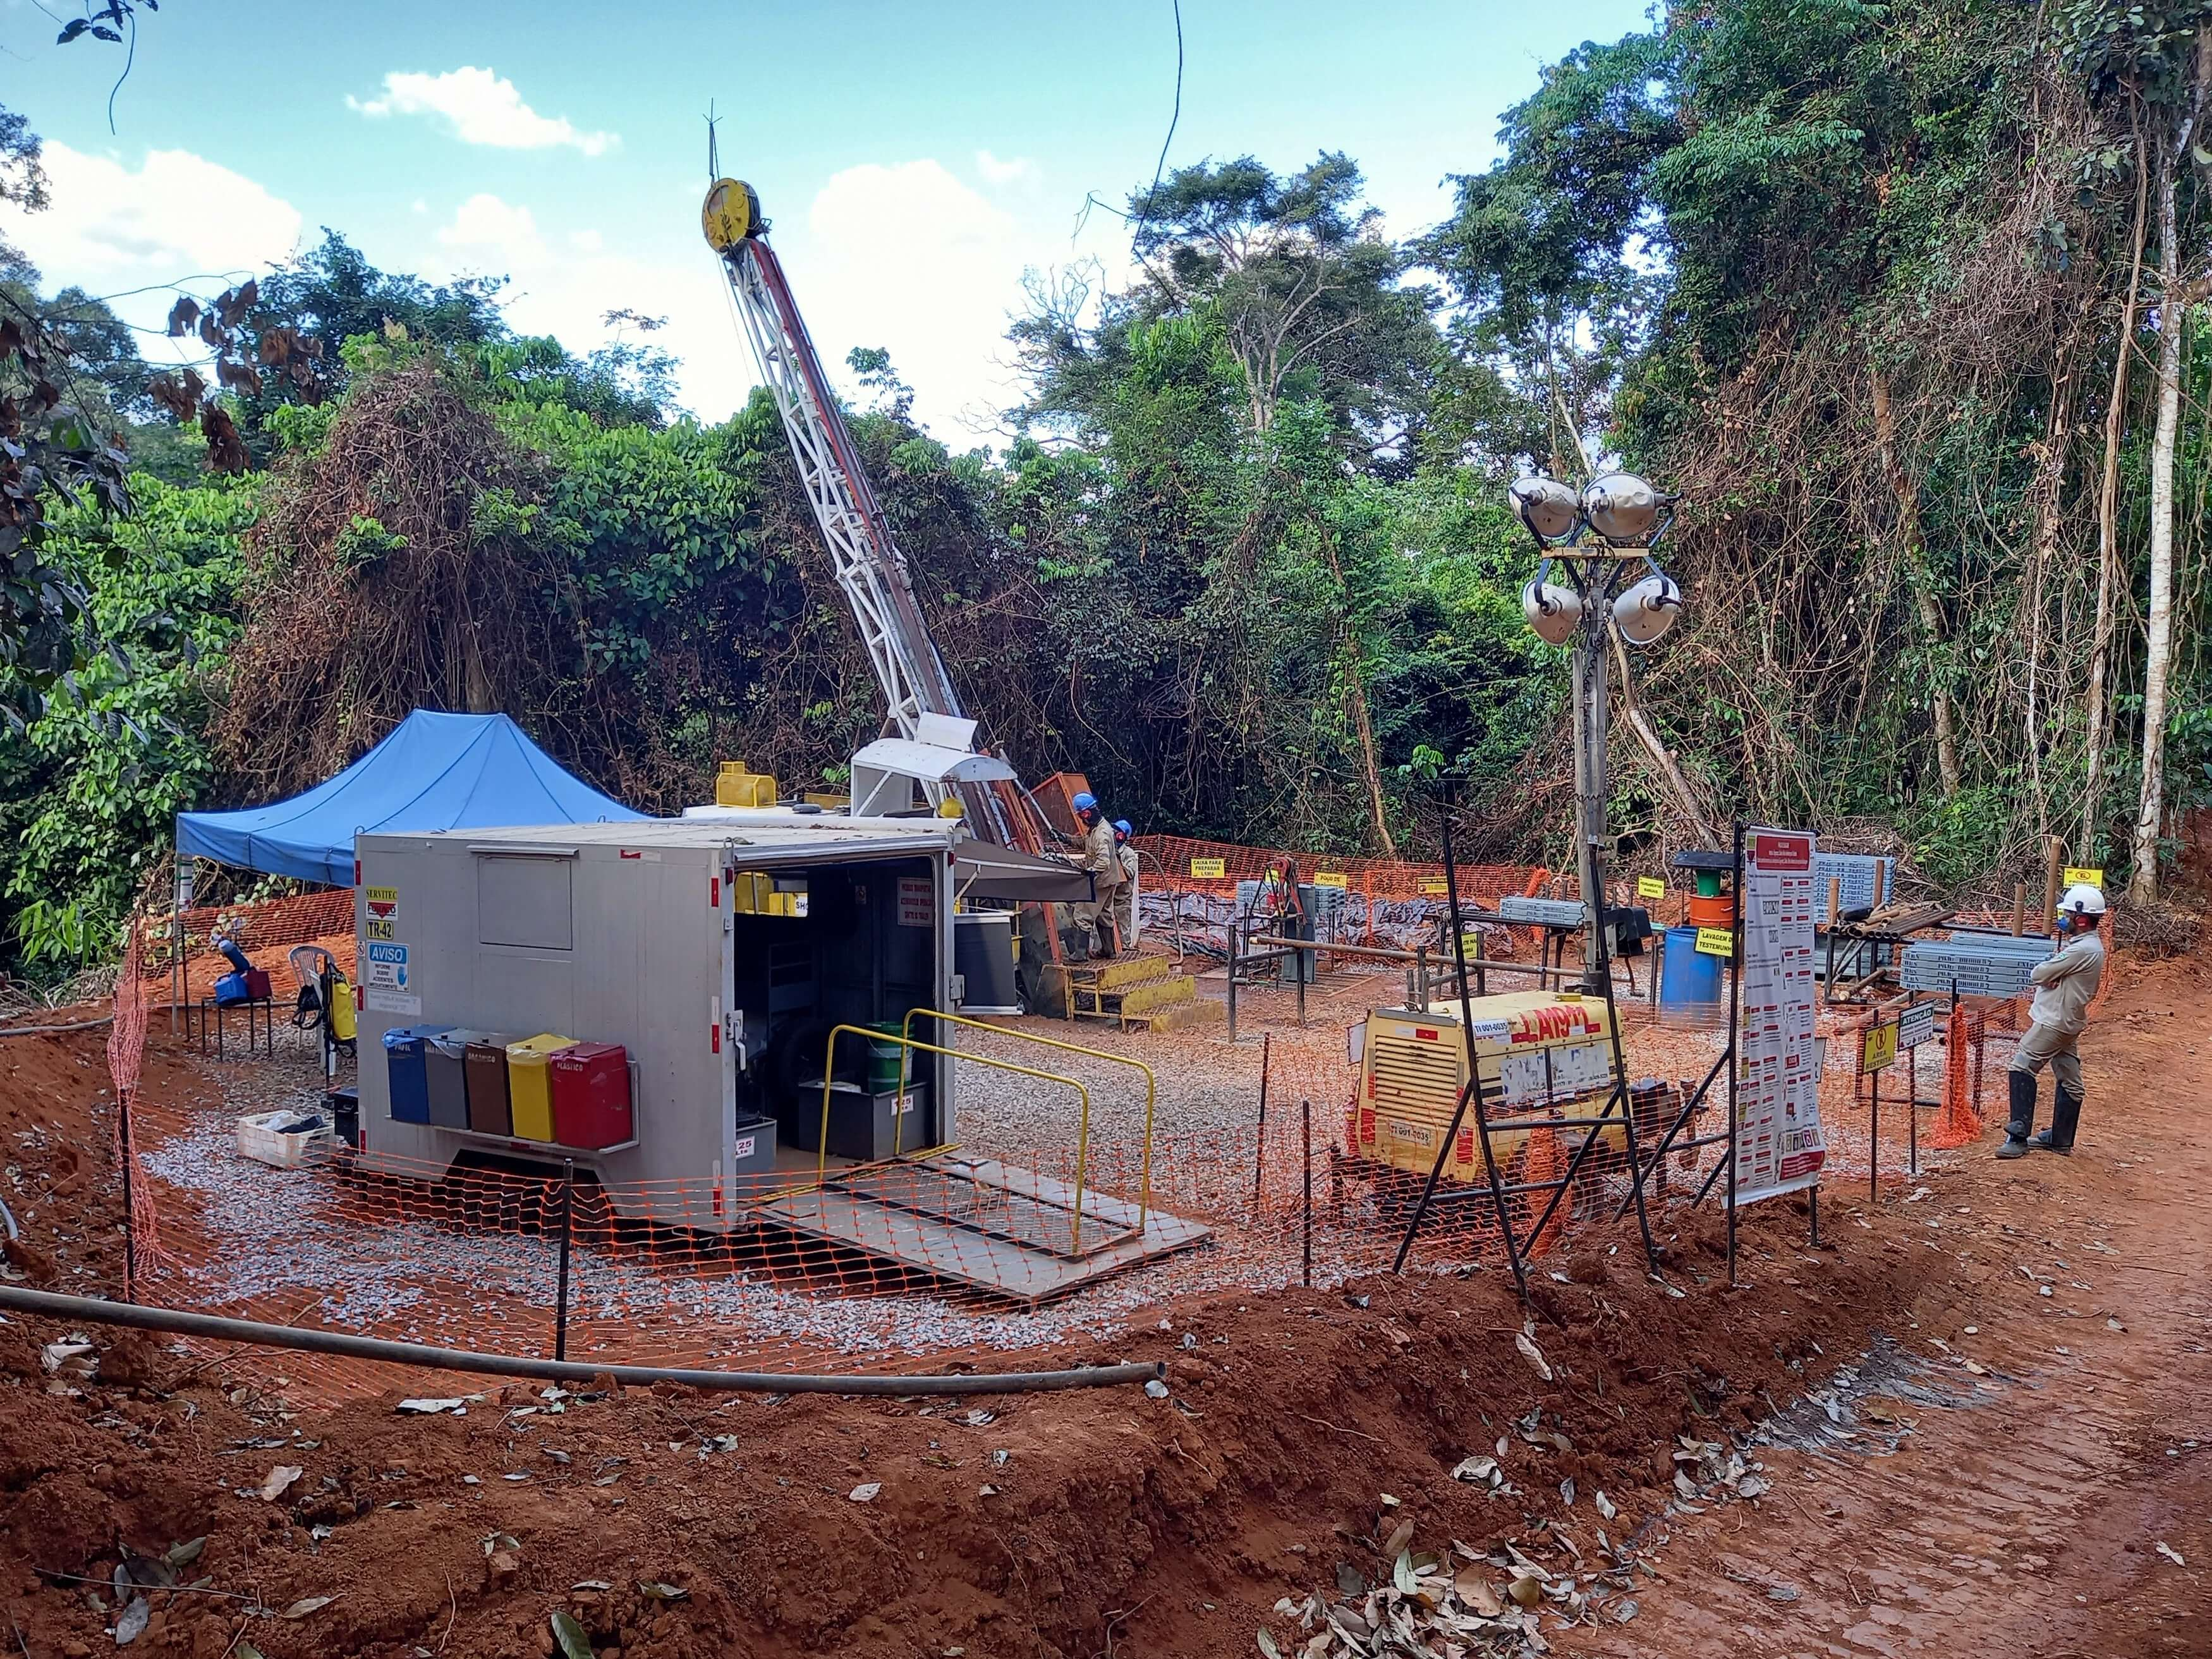 Daily monitoring of drilling operations